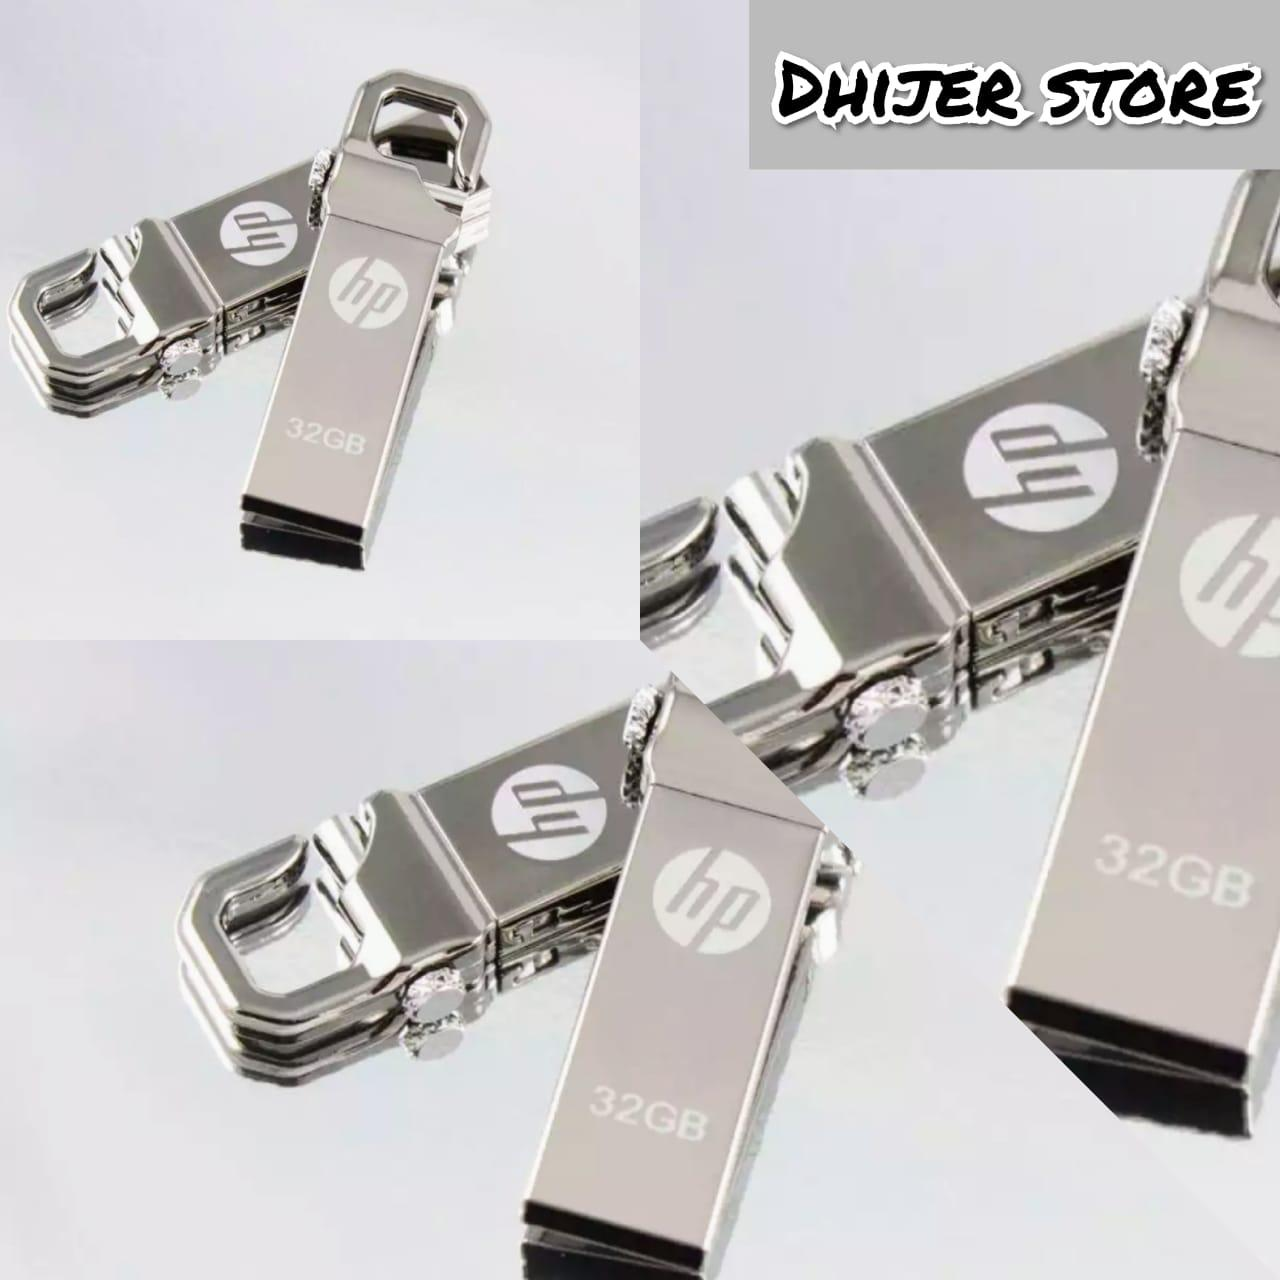 https://www.lazada.co.id/products/promo-flashdisk-hp-64gb-v250w-usb-flashdisk-64-gb-flash-disk-flash-dhijer_store-i875770693-s1279462687.html